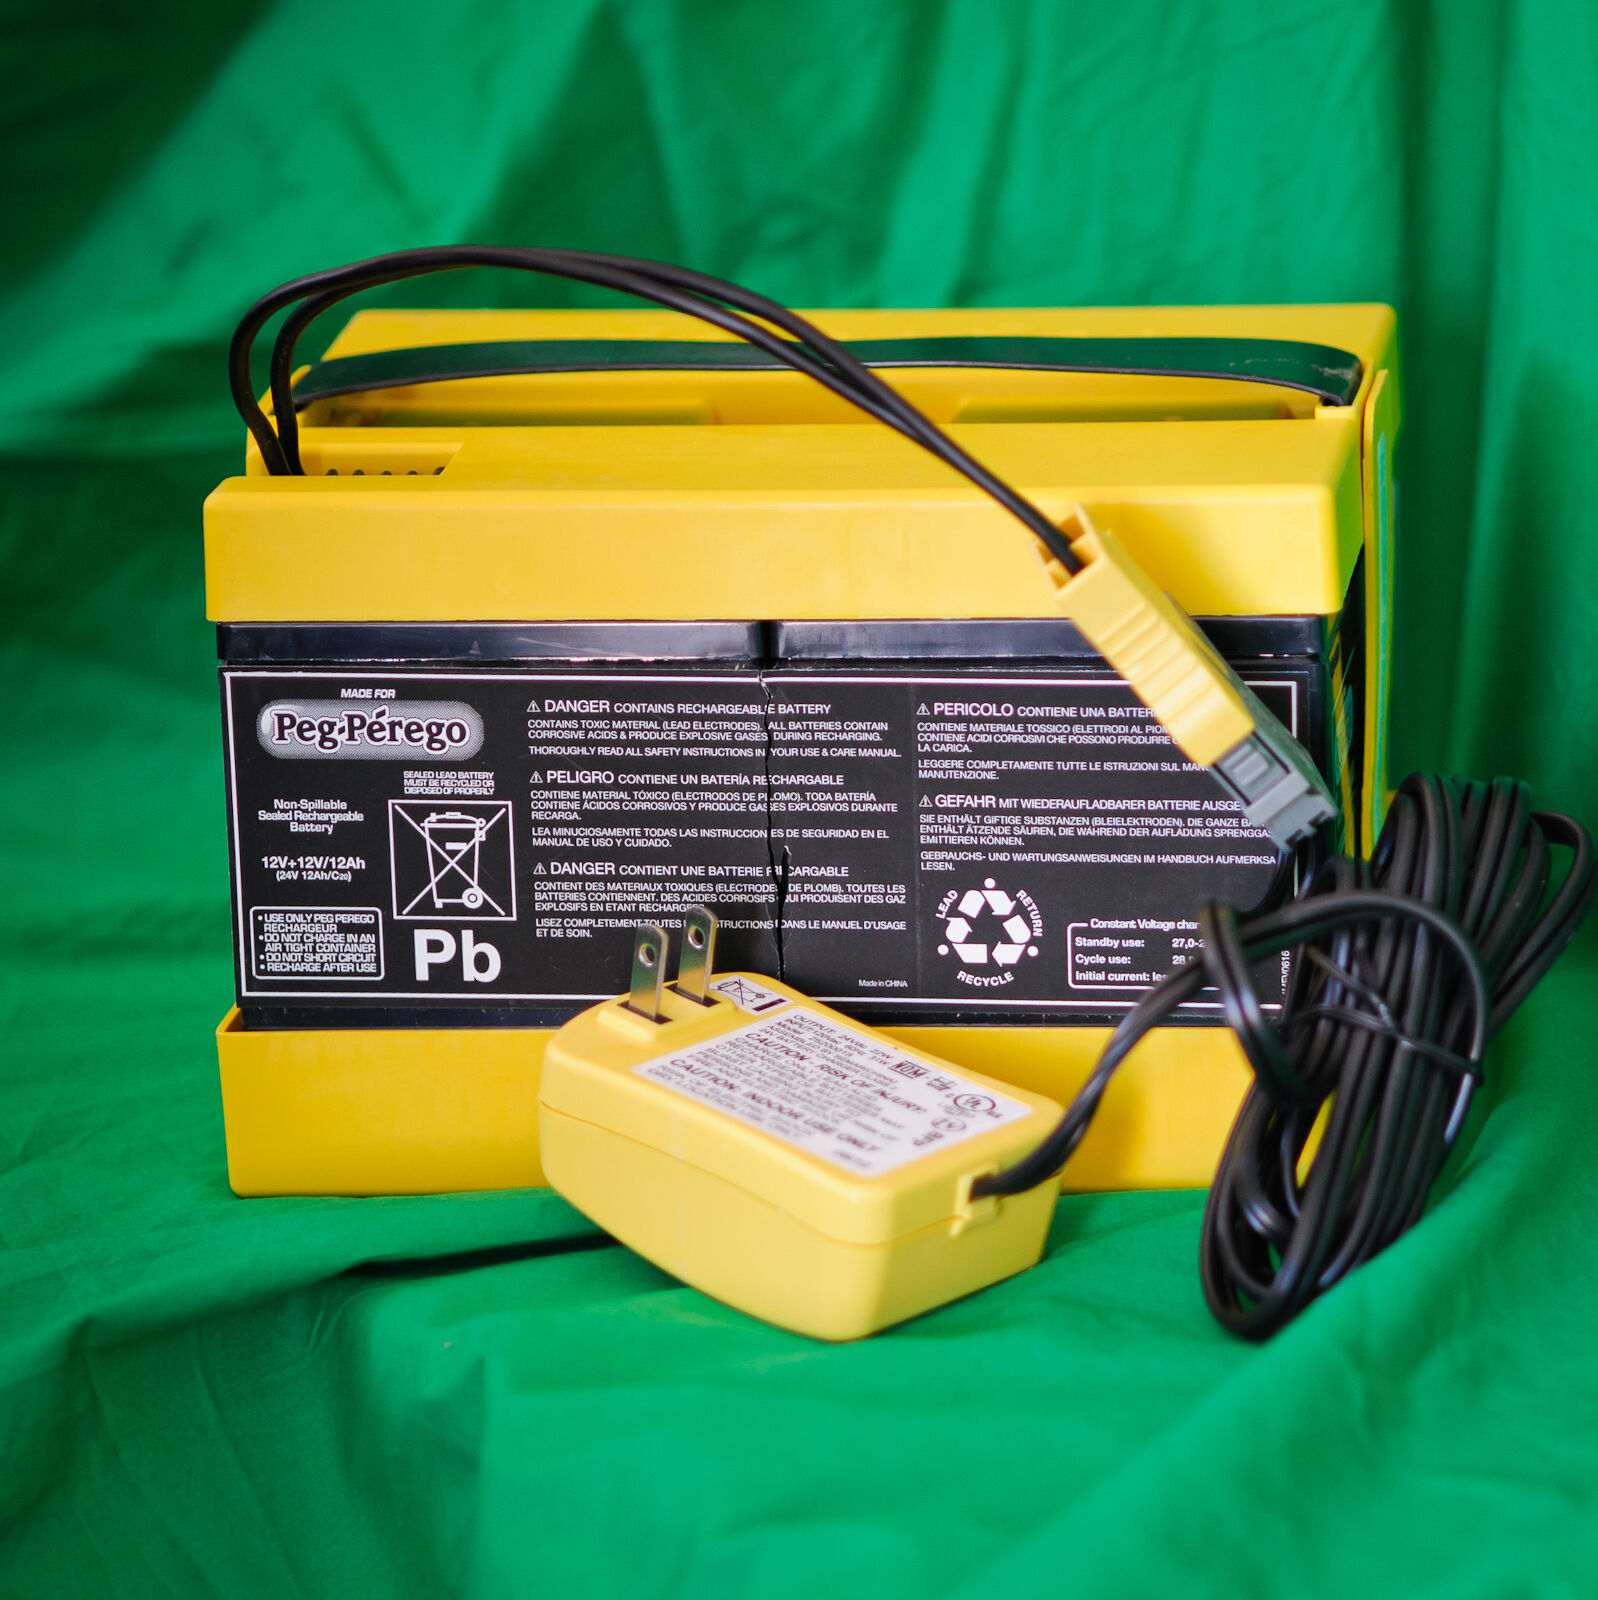 Peg perego 24 volt battery super power part iakb0522 24v ebay picture 1 of 5 publicscrutiny Images